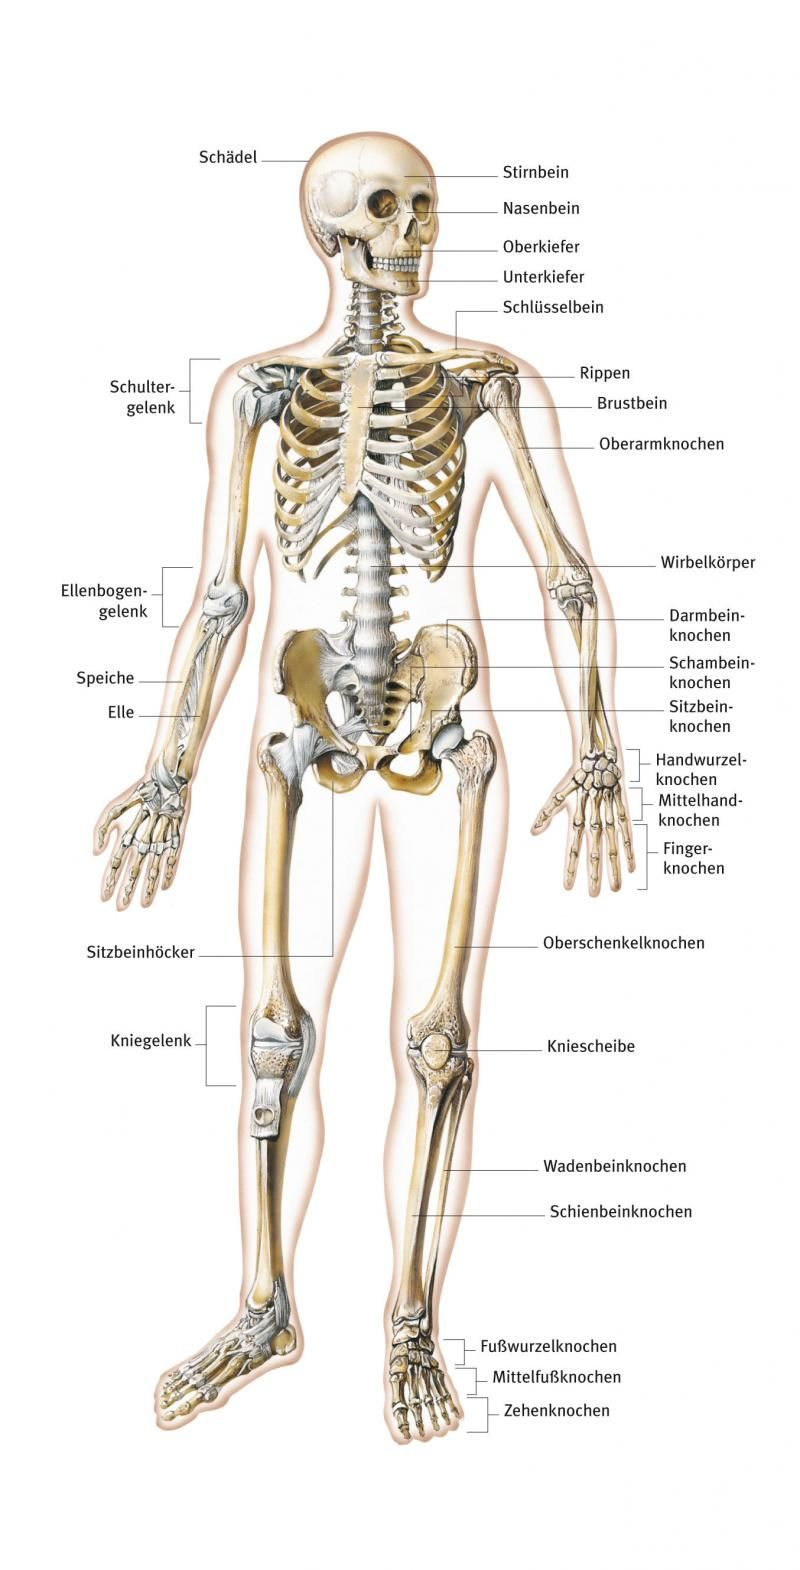 Pin by Timur A. on ANATOMY | Pinterest | Anatomy, Medicine and Medical